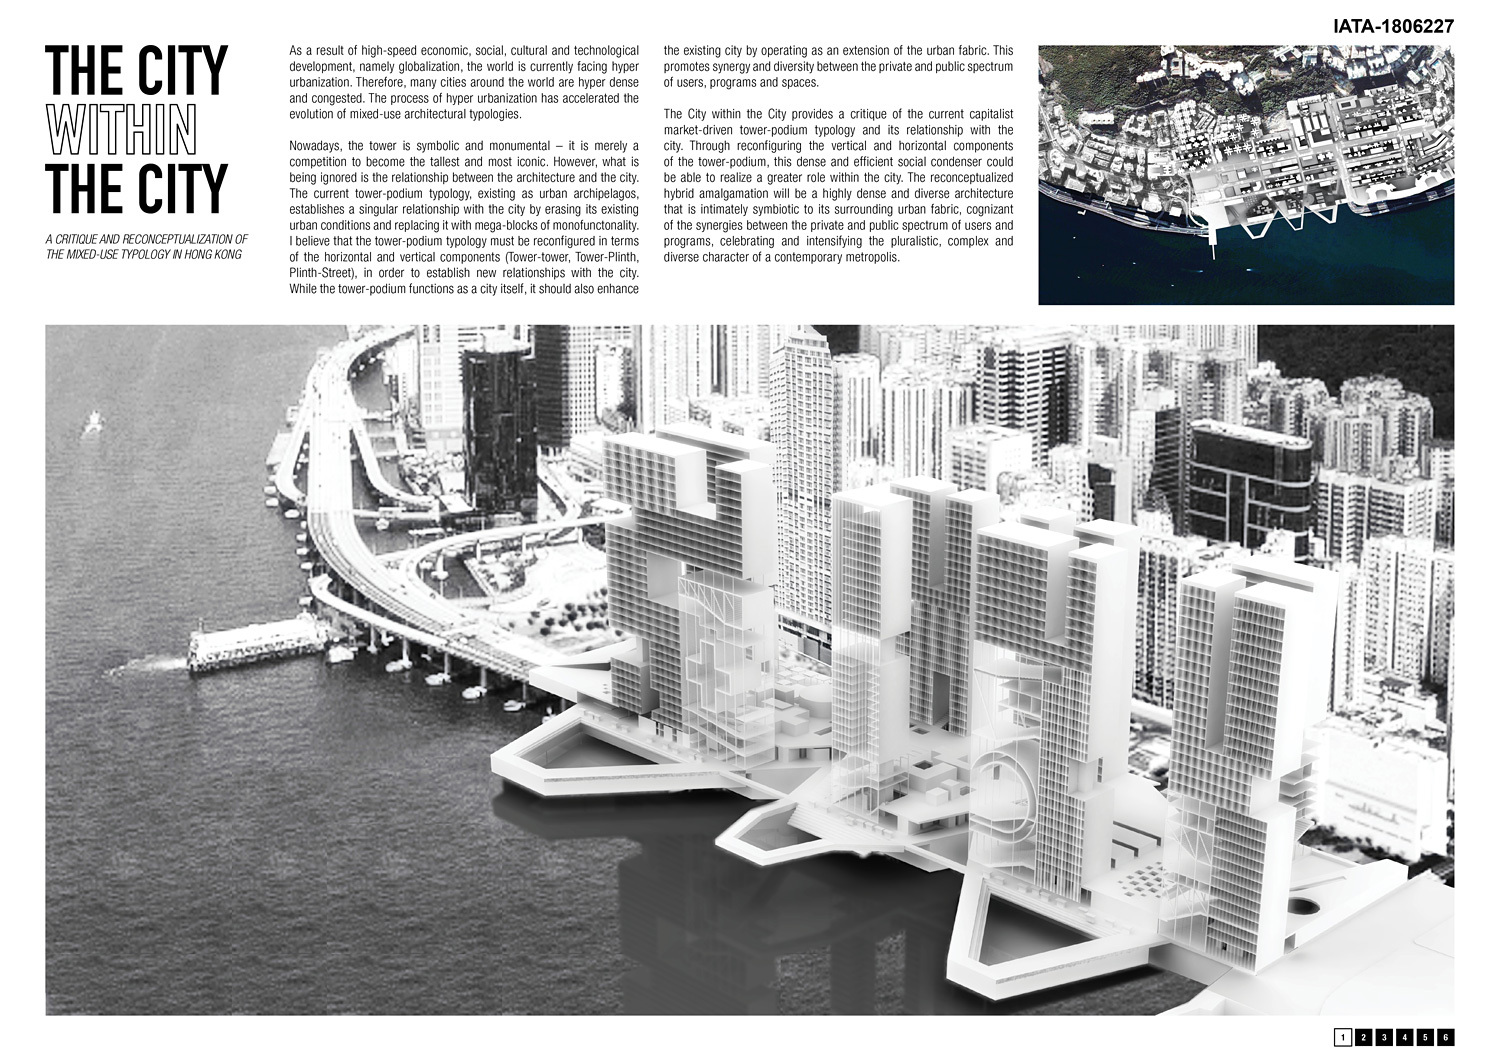 award winning architectural thesis I take 8 undergraduate students every year through the process of architectural thesis as a partial requirement to obtaining a graduate degree in architecture.